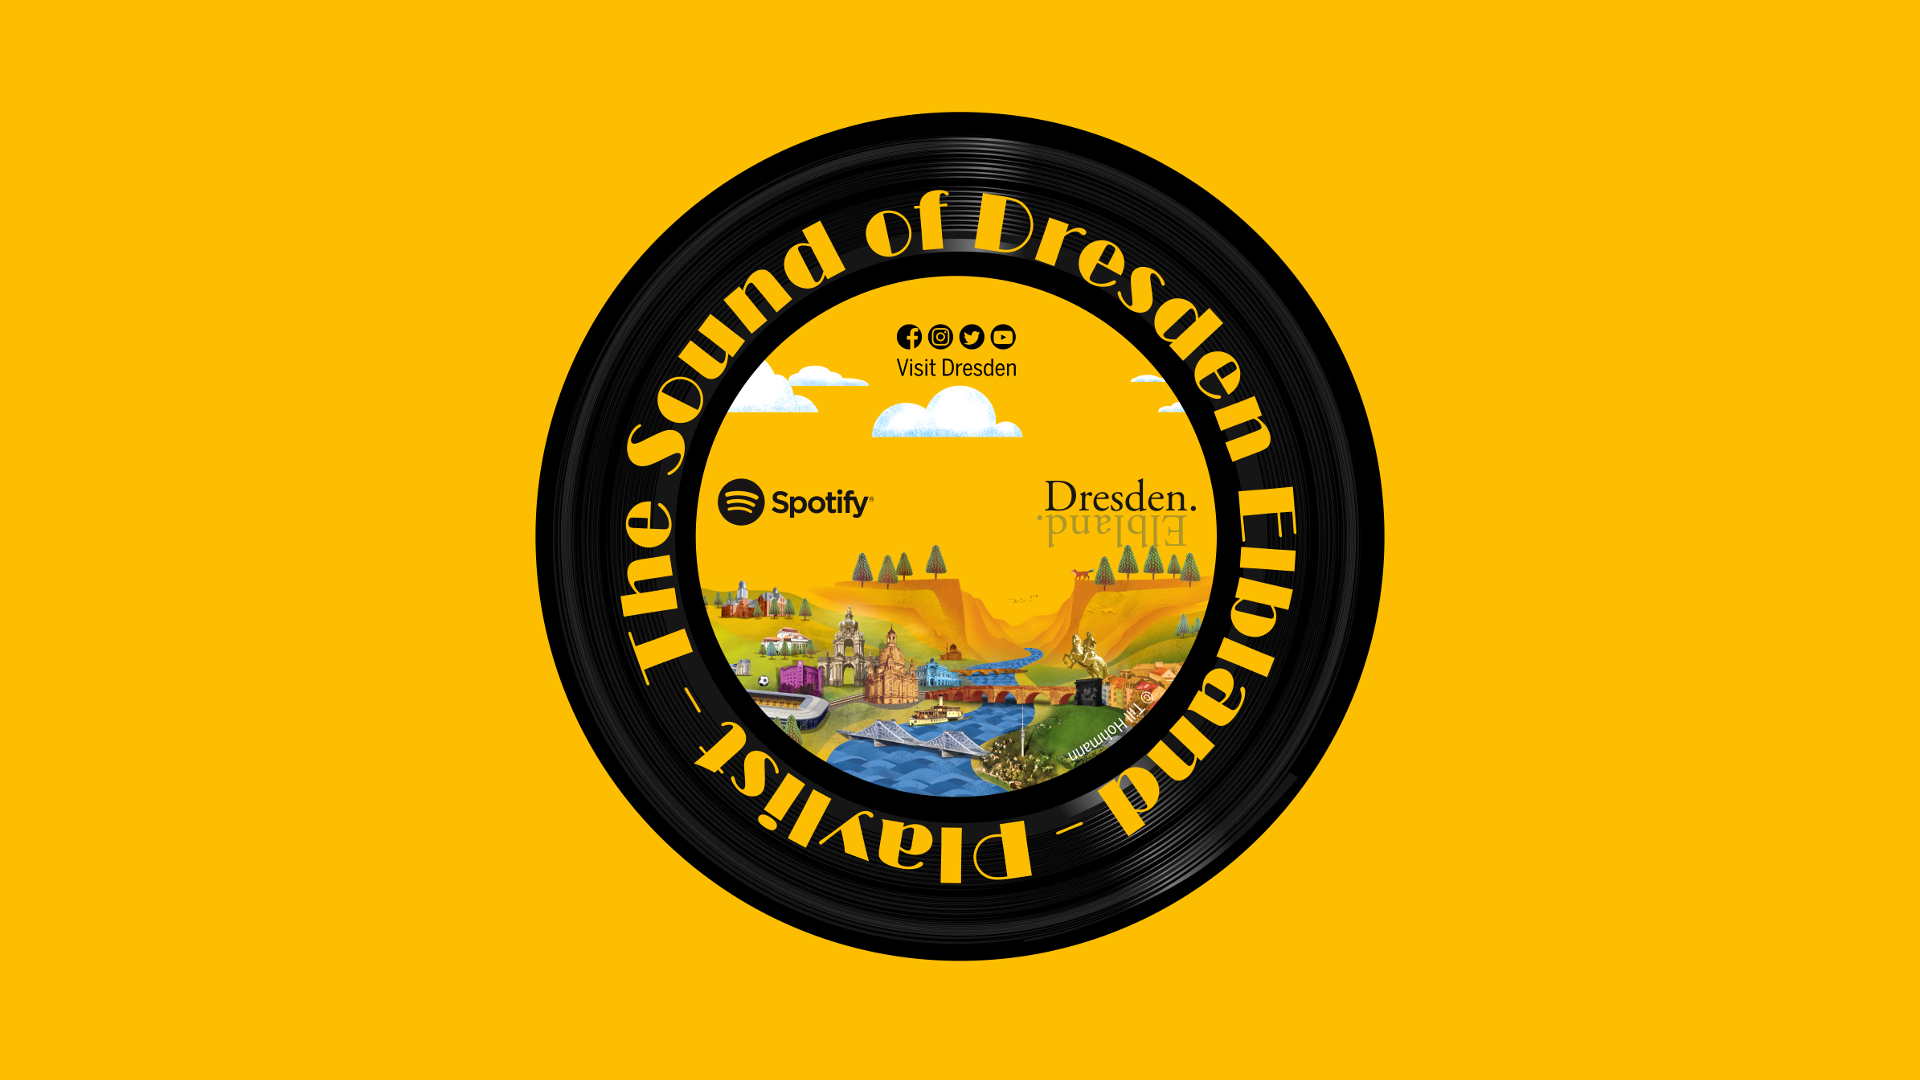 The Sound of Dresden Elbland